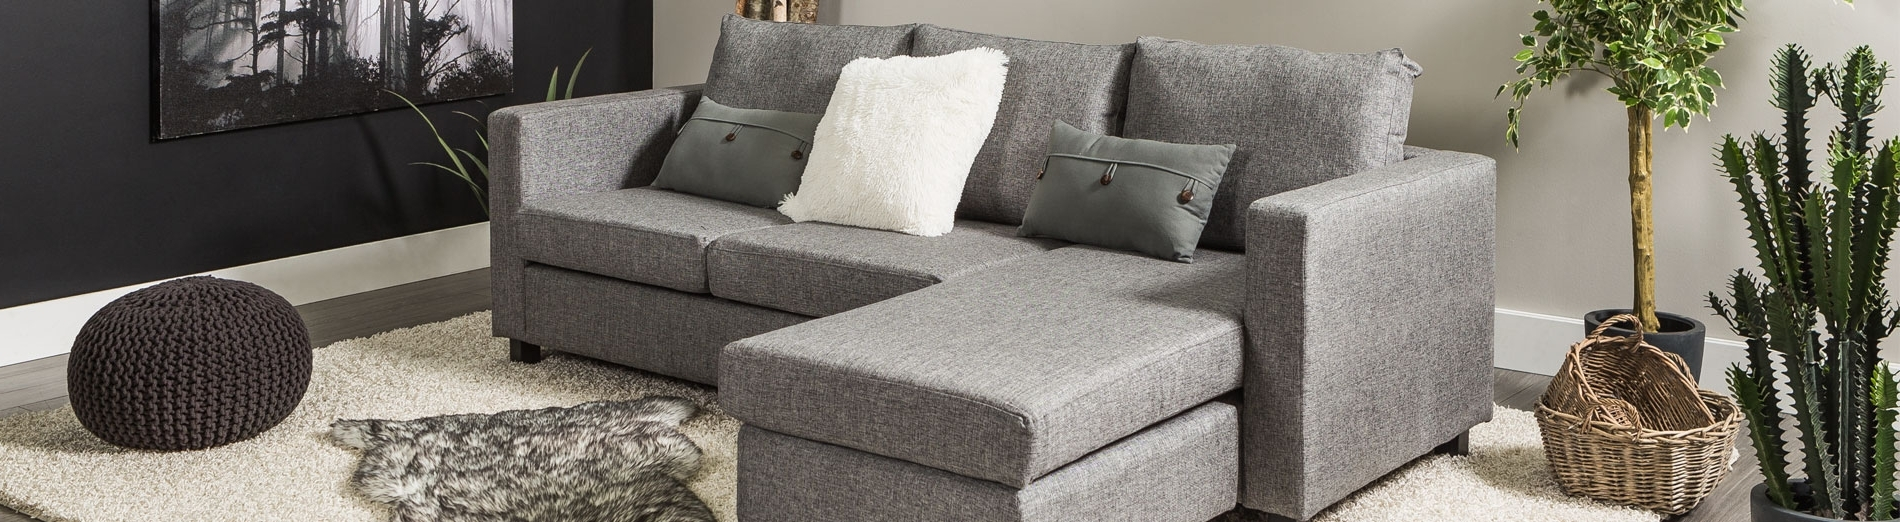 Well Liked Jysk Sectional Sofas Intended For Sofas & Sofabeds & Futons (View 15 of 15)